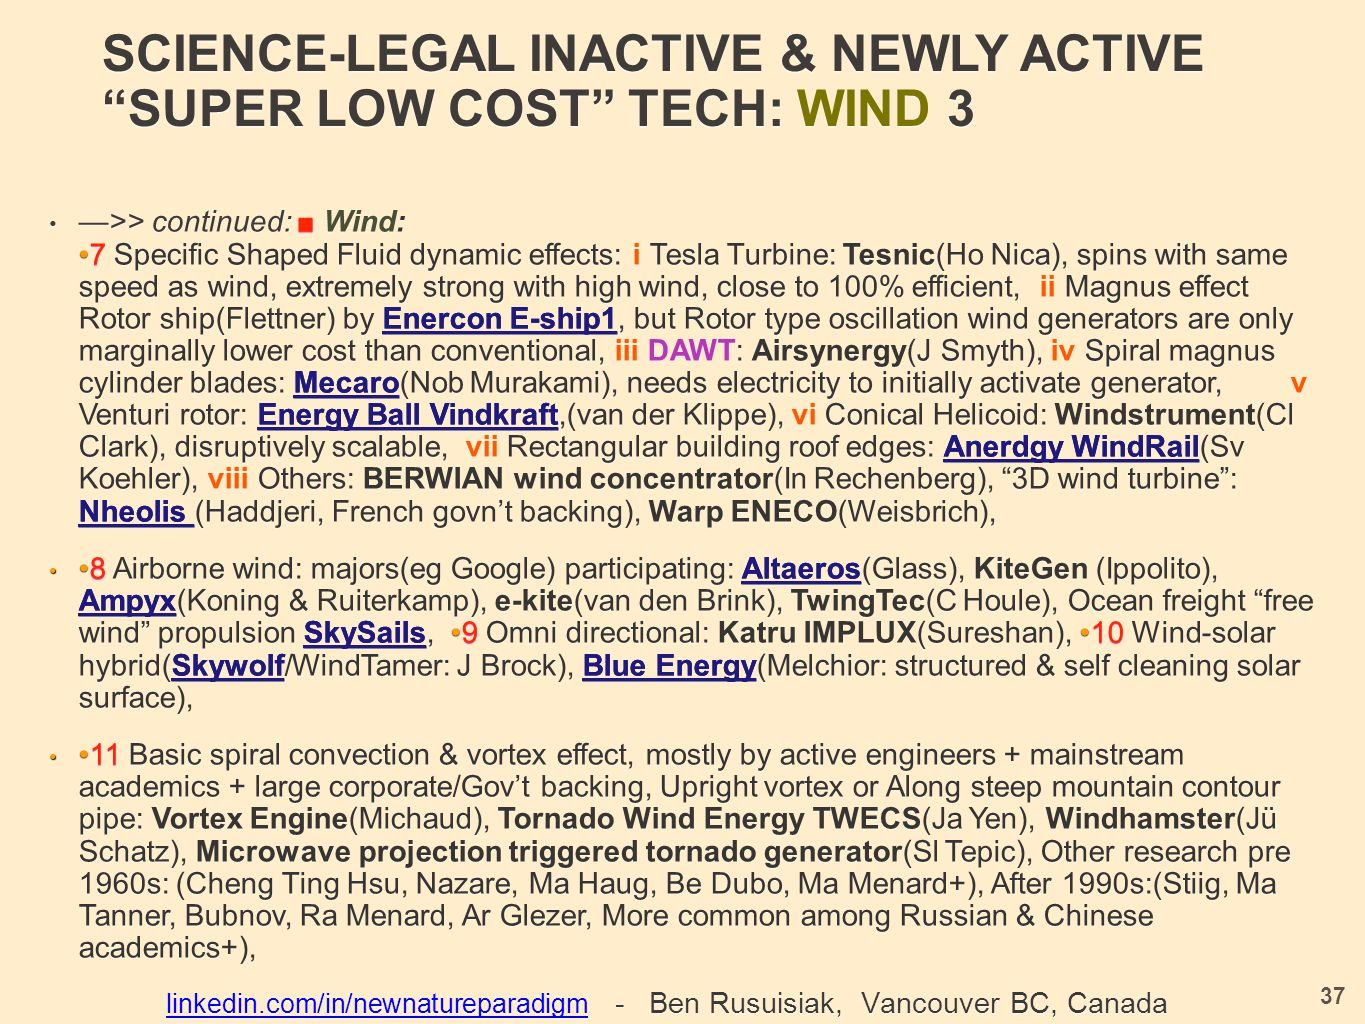 SCIENCE-LEGAL INACTIVE & NEWLY ACTIVE SUPER LOW COST TECH: WIND 3 —>> continued: ■ Wind: 7 Specific Shaped Fluid dynamic effects: i Tesla Turbine: Tesnic(Ho Nica), spins with same speed as wind, extremely strong with high wind, close to 100% efficient, ii Magnus effect Rotor ship(Flettner) by Enercon E-ship1, but Rotor type oscillation wind generators are only marginally lower cost than conventional, iii DAWT: Airsynergy(J Smyth), iv Spiral magnus cylinder blades: Mecaro (Nob Murakami), needs electricity to initially activate generator, v Venturi rotor: Energy Ball Vindkraft,(van der Klippe), vi Conical Helicoid: Windstrument(Cl Clark), disruptively scalable, vii Rectangular building roof edges: Anerdgy WindRail (Sv Koehler), viii Others: BERWIAN wind concentrator(In Rechenberg), 3D wind turbine : Nheolis (Haddjeri, French govn't backing), Warp ENECO(Weisbrich), —>> continued: ■ Wind:7 Specific Shaped Fluid dynamic effects: i Tesla Turbine: Tesnic(Ho Nica), spins with same speed as wind, extremely strong with high wind, close to 100% efficient, ii Magnus effect Rotor ship(Flettner) by Enercon E-ship1, but Rotor type oscillation wind generators are only marginally lower cost than conventional, iii DAWT: Airsynergy(J Smyth), iv Spiral magnus cylinder blades: Mecaro(Nob Murakami), needs electricity to initially activate generator, v Venturi rotor: Energy Ball Vindkraft,(van der Klippe), vi Conical Helicoid: Windstrument(Cl Clark), disruptively scalable, vii Rectangular building roof edges: Anerdgy WindRail(Sv Koehler), viii Others: BERWIAN wind concentrator(In Rechenberg), 3D wind turbine : Nheolis (Haddjeri, French govn't backing), Warp ENECO(Weisbrich), 8 Airborne wind: majors(eg Google) participating: Altaeros (Glass), KiteGen (Ippolito), Ampyx (Koning & Ruiterkamp), e-kite(van den Brink), TwingTec(C Houle), Ocean freight free wind propulsion SkySails, 9 Omni directional: Katru IMPLUX(Sureshan), 10 Wind-solar hybrid( Skywolf /WindTamer: J Brock), Blue Energy (Melchior: structured & self cleaning solar surface),8 Airborne wind: majors(eg Google) participating: Altaeros(Glass), KiteGen (Ippolito), Ampyx(Koning & Ruiterkamp), e-kite(van den Brink), TwingTec(C Houle), Ocean freight free wind propulsion SkySails, 9 Omni directional: Katru IMPLUX(Sureshan), 10 Wind-solar hybrid(Skywolf/WindTamer: J Brock), Blue Energy(Melchior: structured & self cleaning solar surface), 11 Basic spiral convection & vortex effect, mostly by active engineers + mainstream academics + large corporate/Gov't backing, Upright vortex or Along steep mountain contour pipe: Vortex Engine(Michaud), Tornado Wind Energy TWECS(Ja Yen), Windhamster(Jü Schatz), Microwave projection triggered tornado generator(Sl Tepic), Other research pre 1960s: (Cheng Ting Hsu, Nazare, Ma Haug, Be Dubo, Ma Menard+), After 1990s:(Stiig, Ma Tanner, Bubnov, Ra Menard, Ar Glezer, More common among Russian & Chinese academics+),11 Basic spiral convection & vortex effect, mostly by active engineers + mainstream academics + large corporate/Gov't backing, Upright vortex or Along steep mountain contour pipe: Vortex Engine(Michaud), Tornado Wind Energy TWECS(Ja Yen), Windhamster(Jü Schatz), Microwave projection triggered tornado generator(Sl Tepic), Other research pre 1960s: (Cheng Ting Hsu, Nazare, Ma Haug, Be Dubo, Ma Menard+), After 1990s:(Stiig, Ma Tanner, Bubnov, Ra Menard, Ar Glezer, More common among Russian & Chinese academics+), 37 linkedin.com/in/newnatureparadigmlinkedin.com/in/newnatureparadigm - Ben Rusuisiak, Vancouver BC, Canada linkedin.com/in/newnatureparadigm